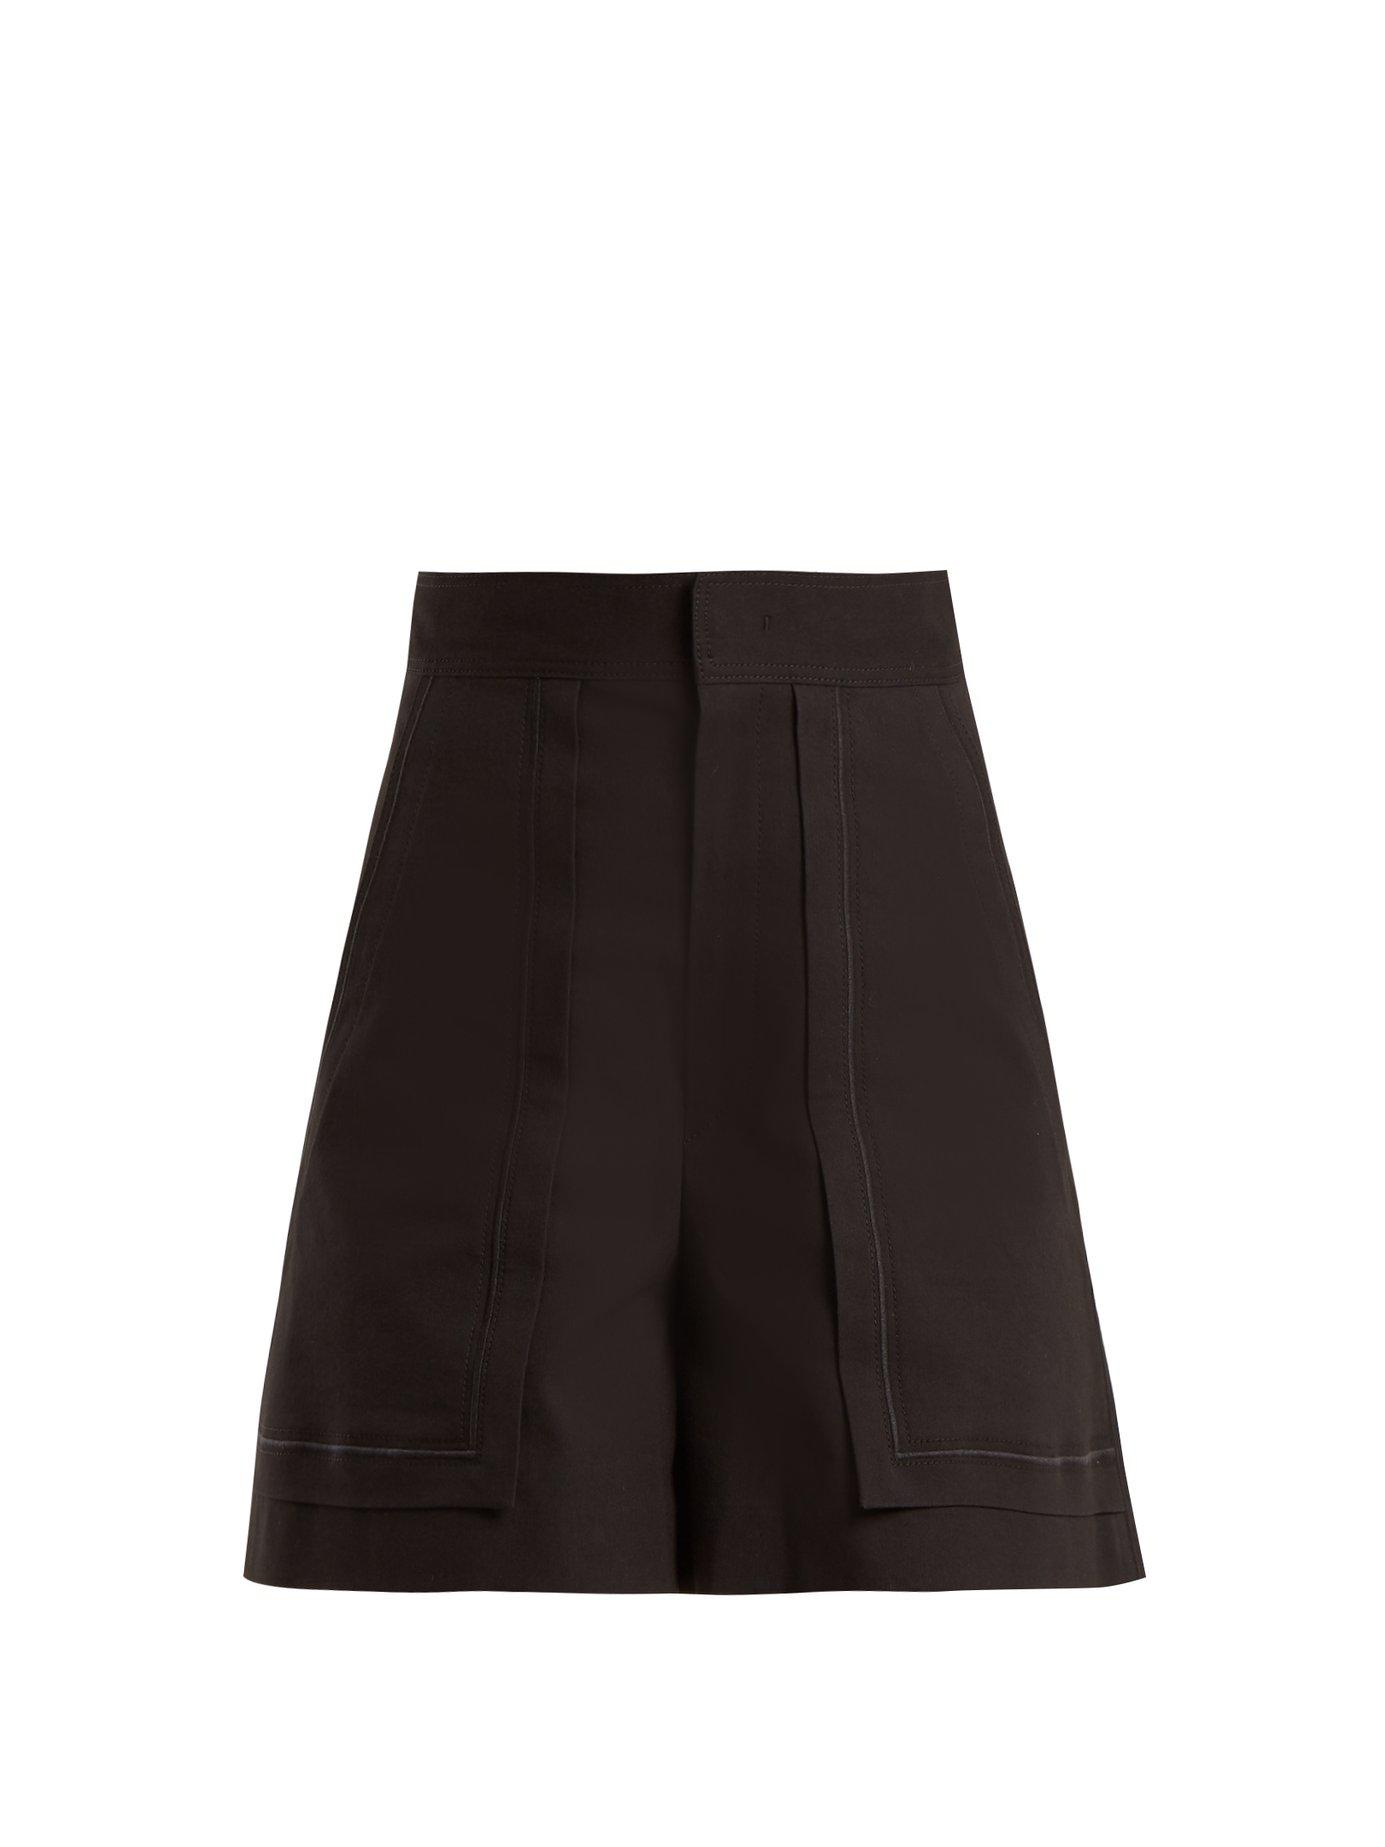 Cheap Sale Sneakernews Cheap Sale Cheapest Price Lucky cotton-blend shorts Isabel Marant 2018 Newest Online YIZhXbuU